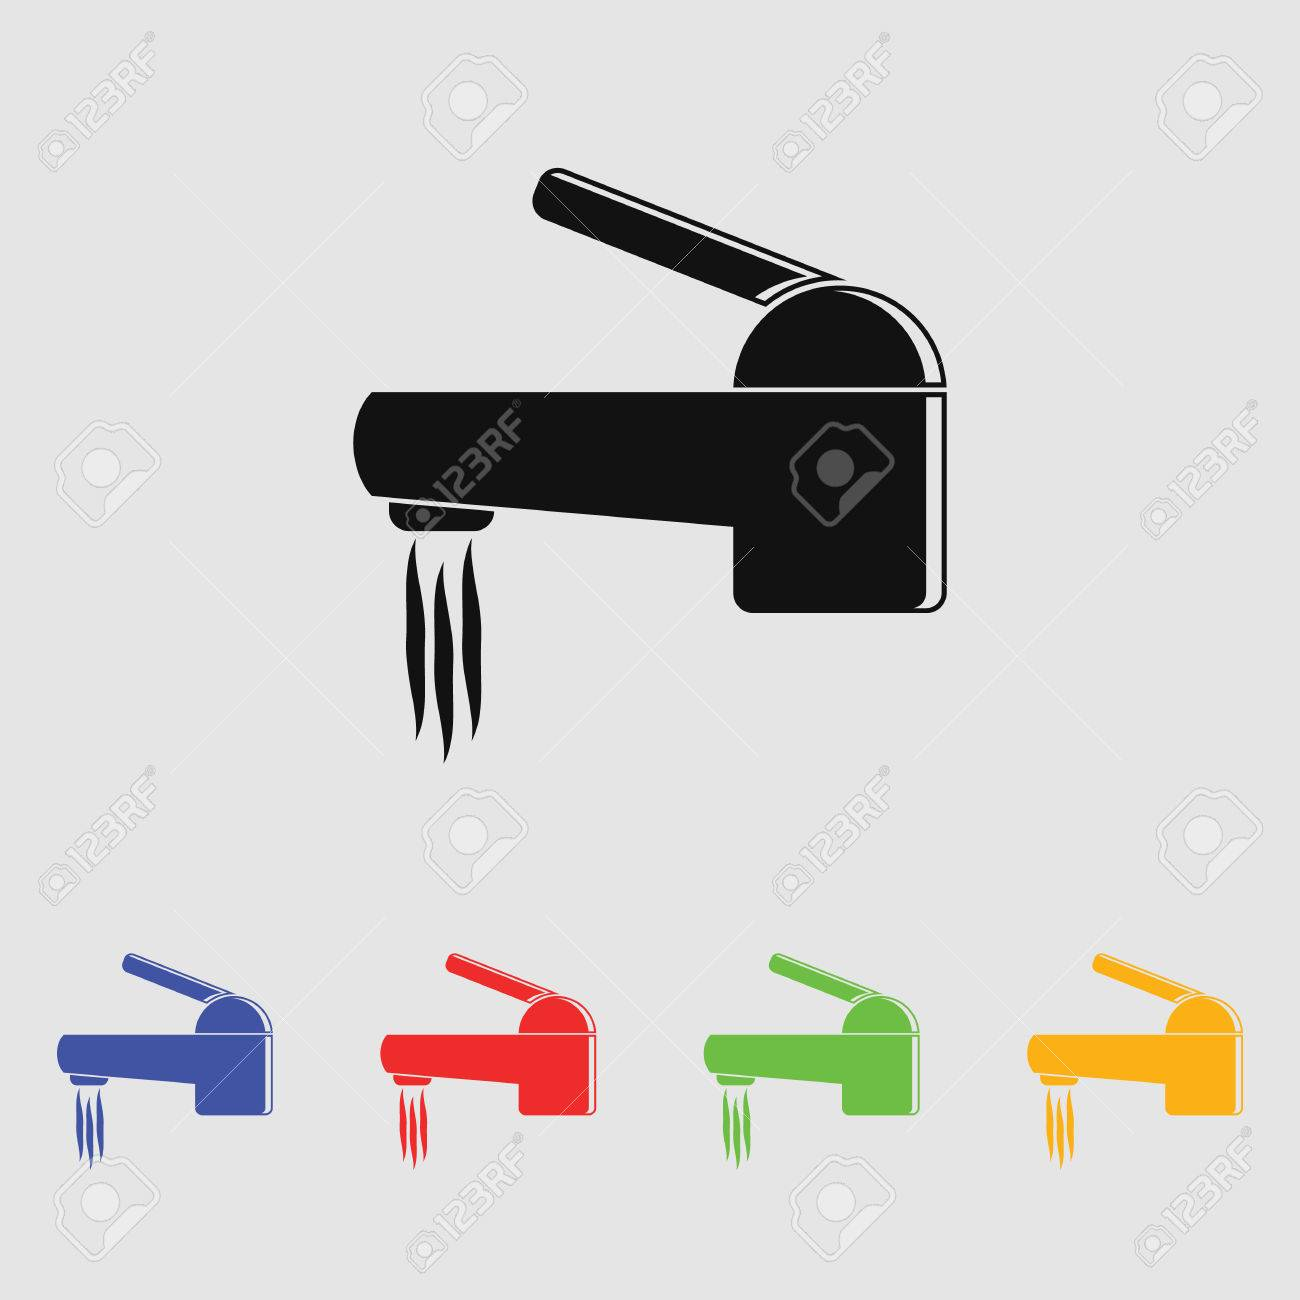 Water Faucet Vector Icon. Flat Style For Web And Mobile Royalty Free ...